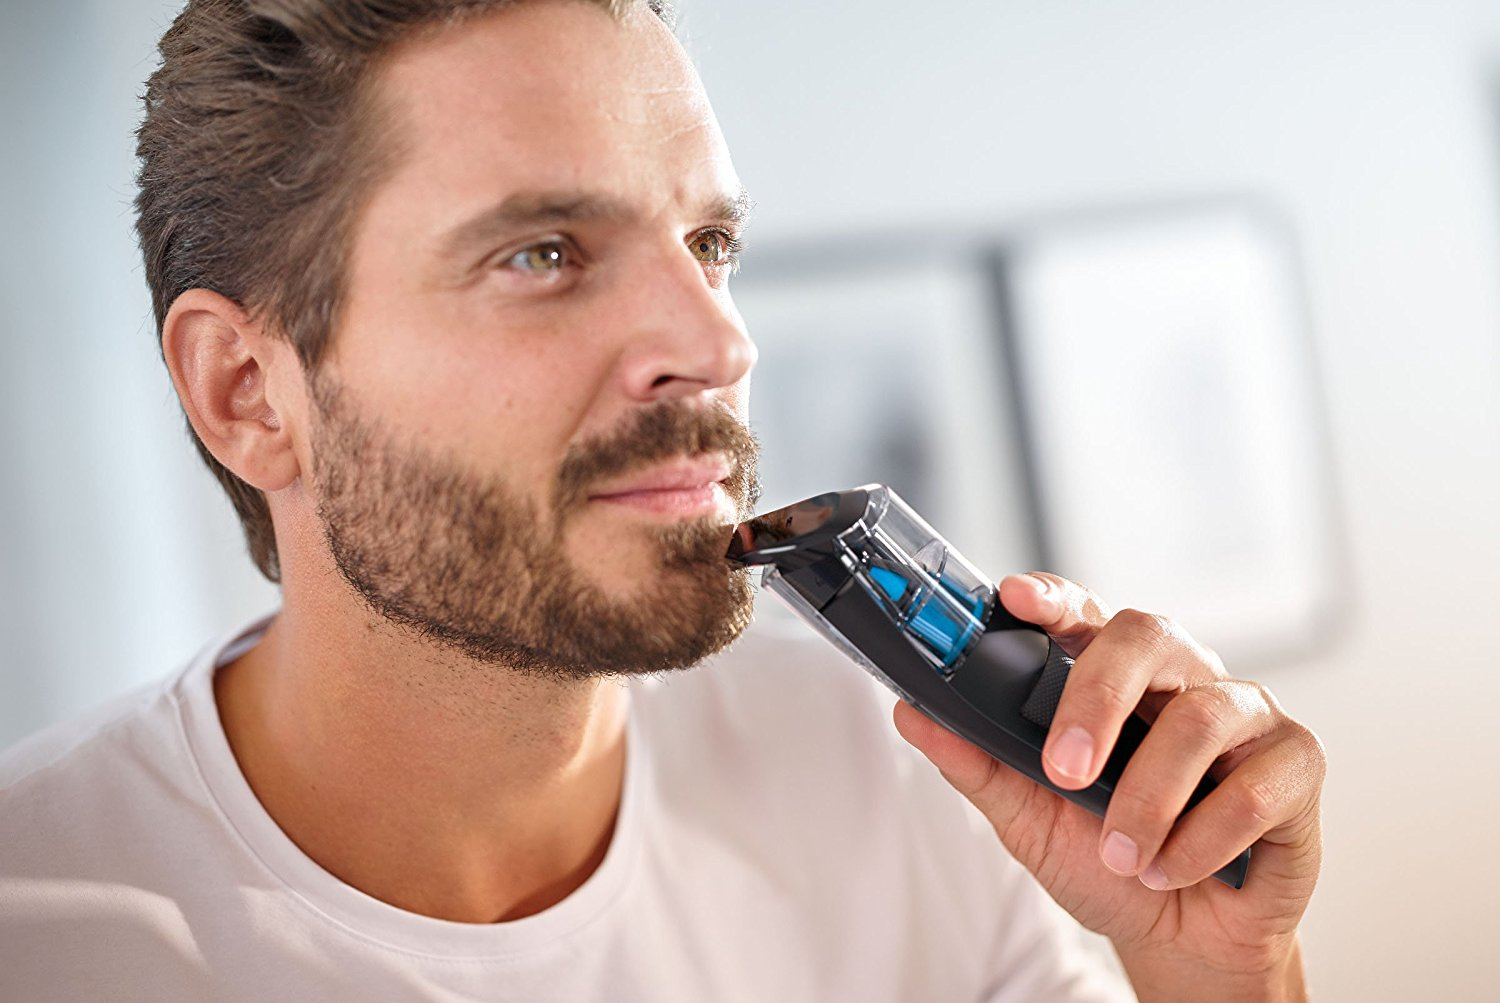 The main criteria for choosing a trimmer for cutting